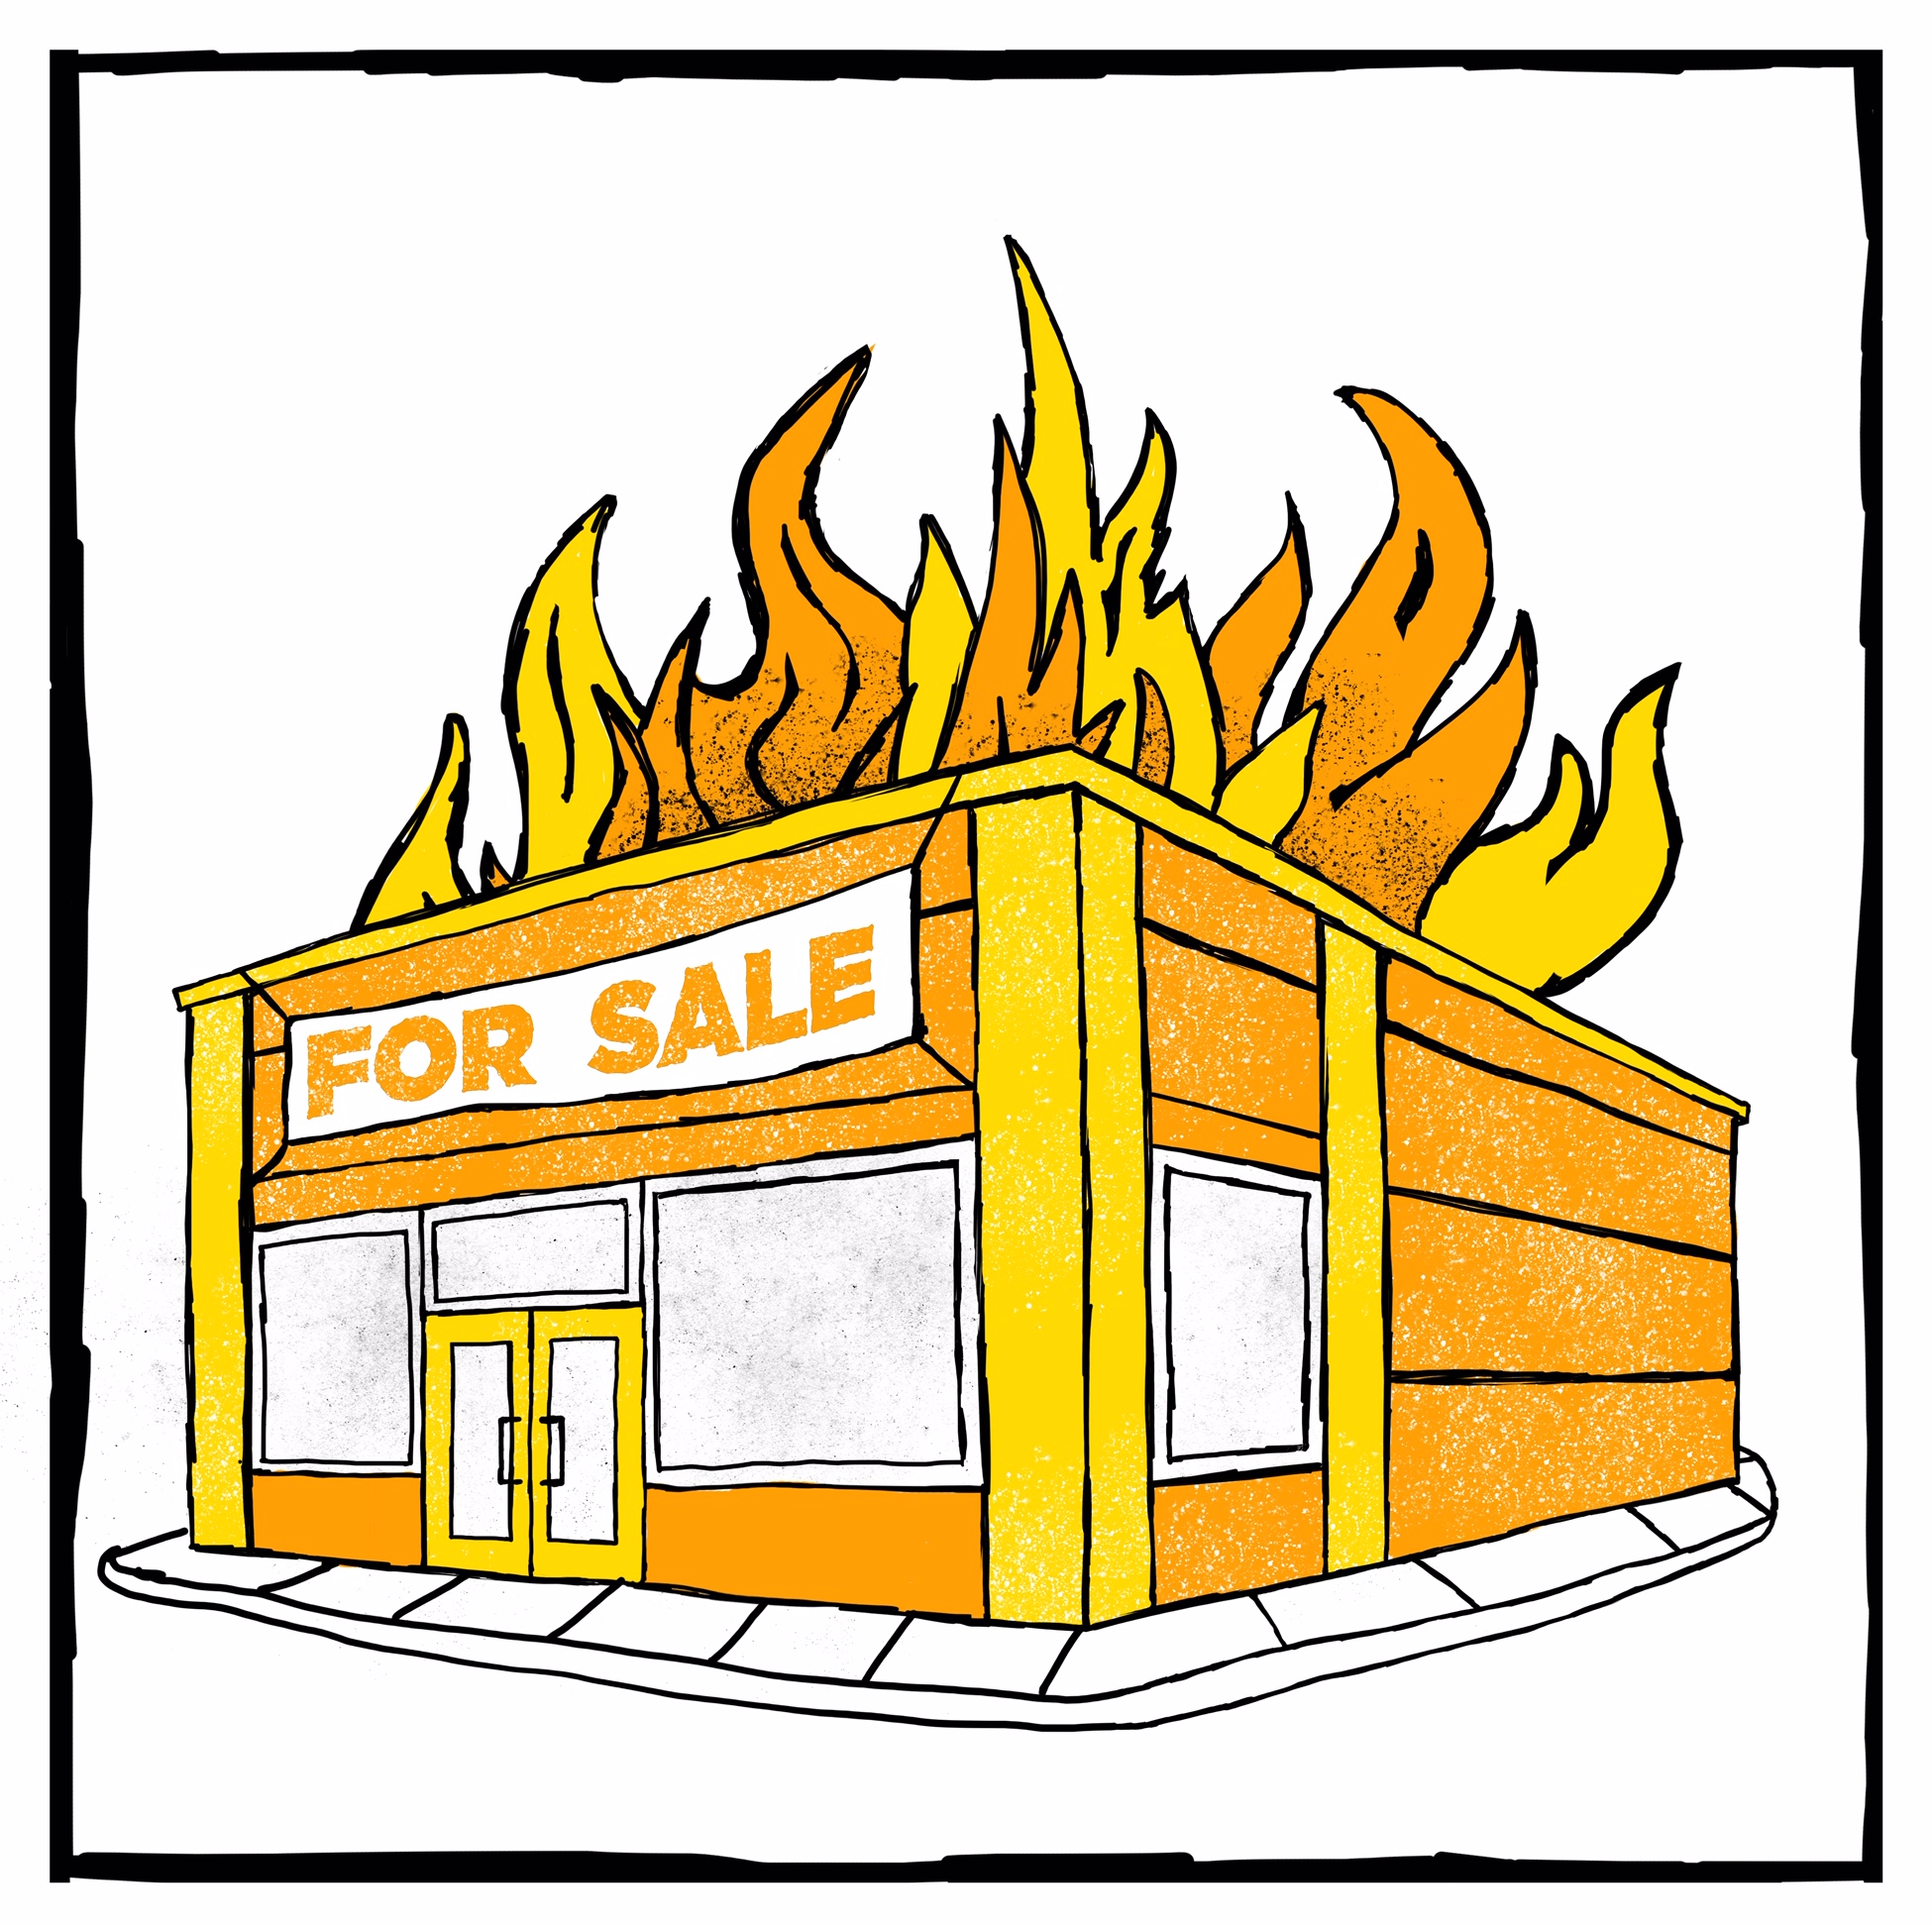 Succession planning failure the fire sale